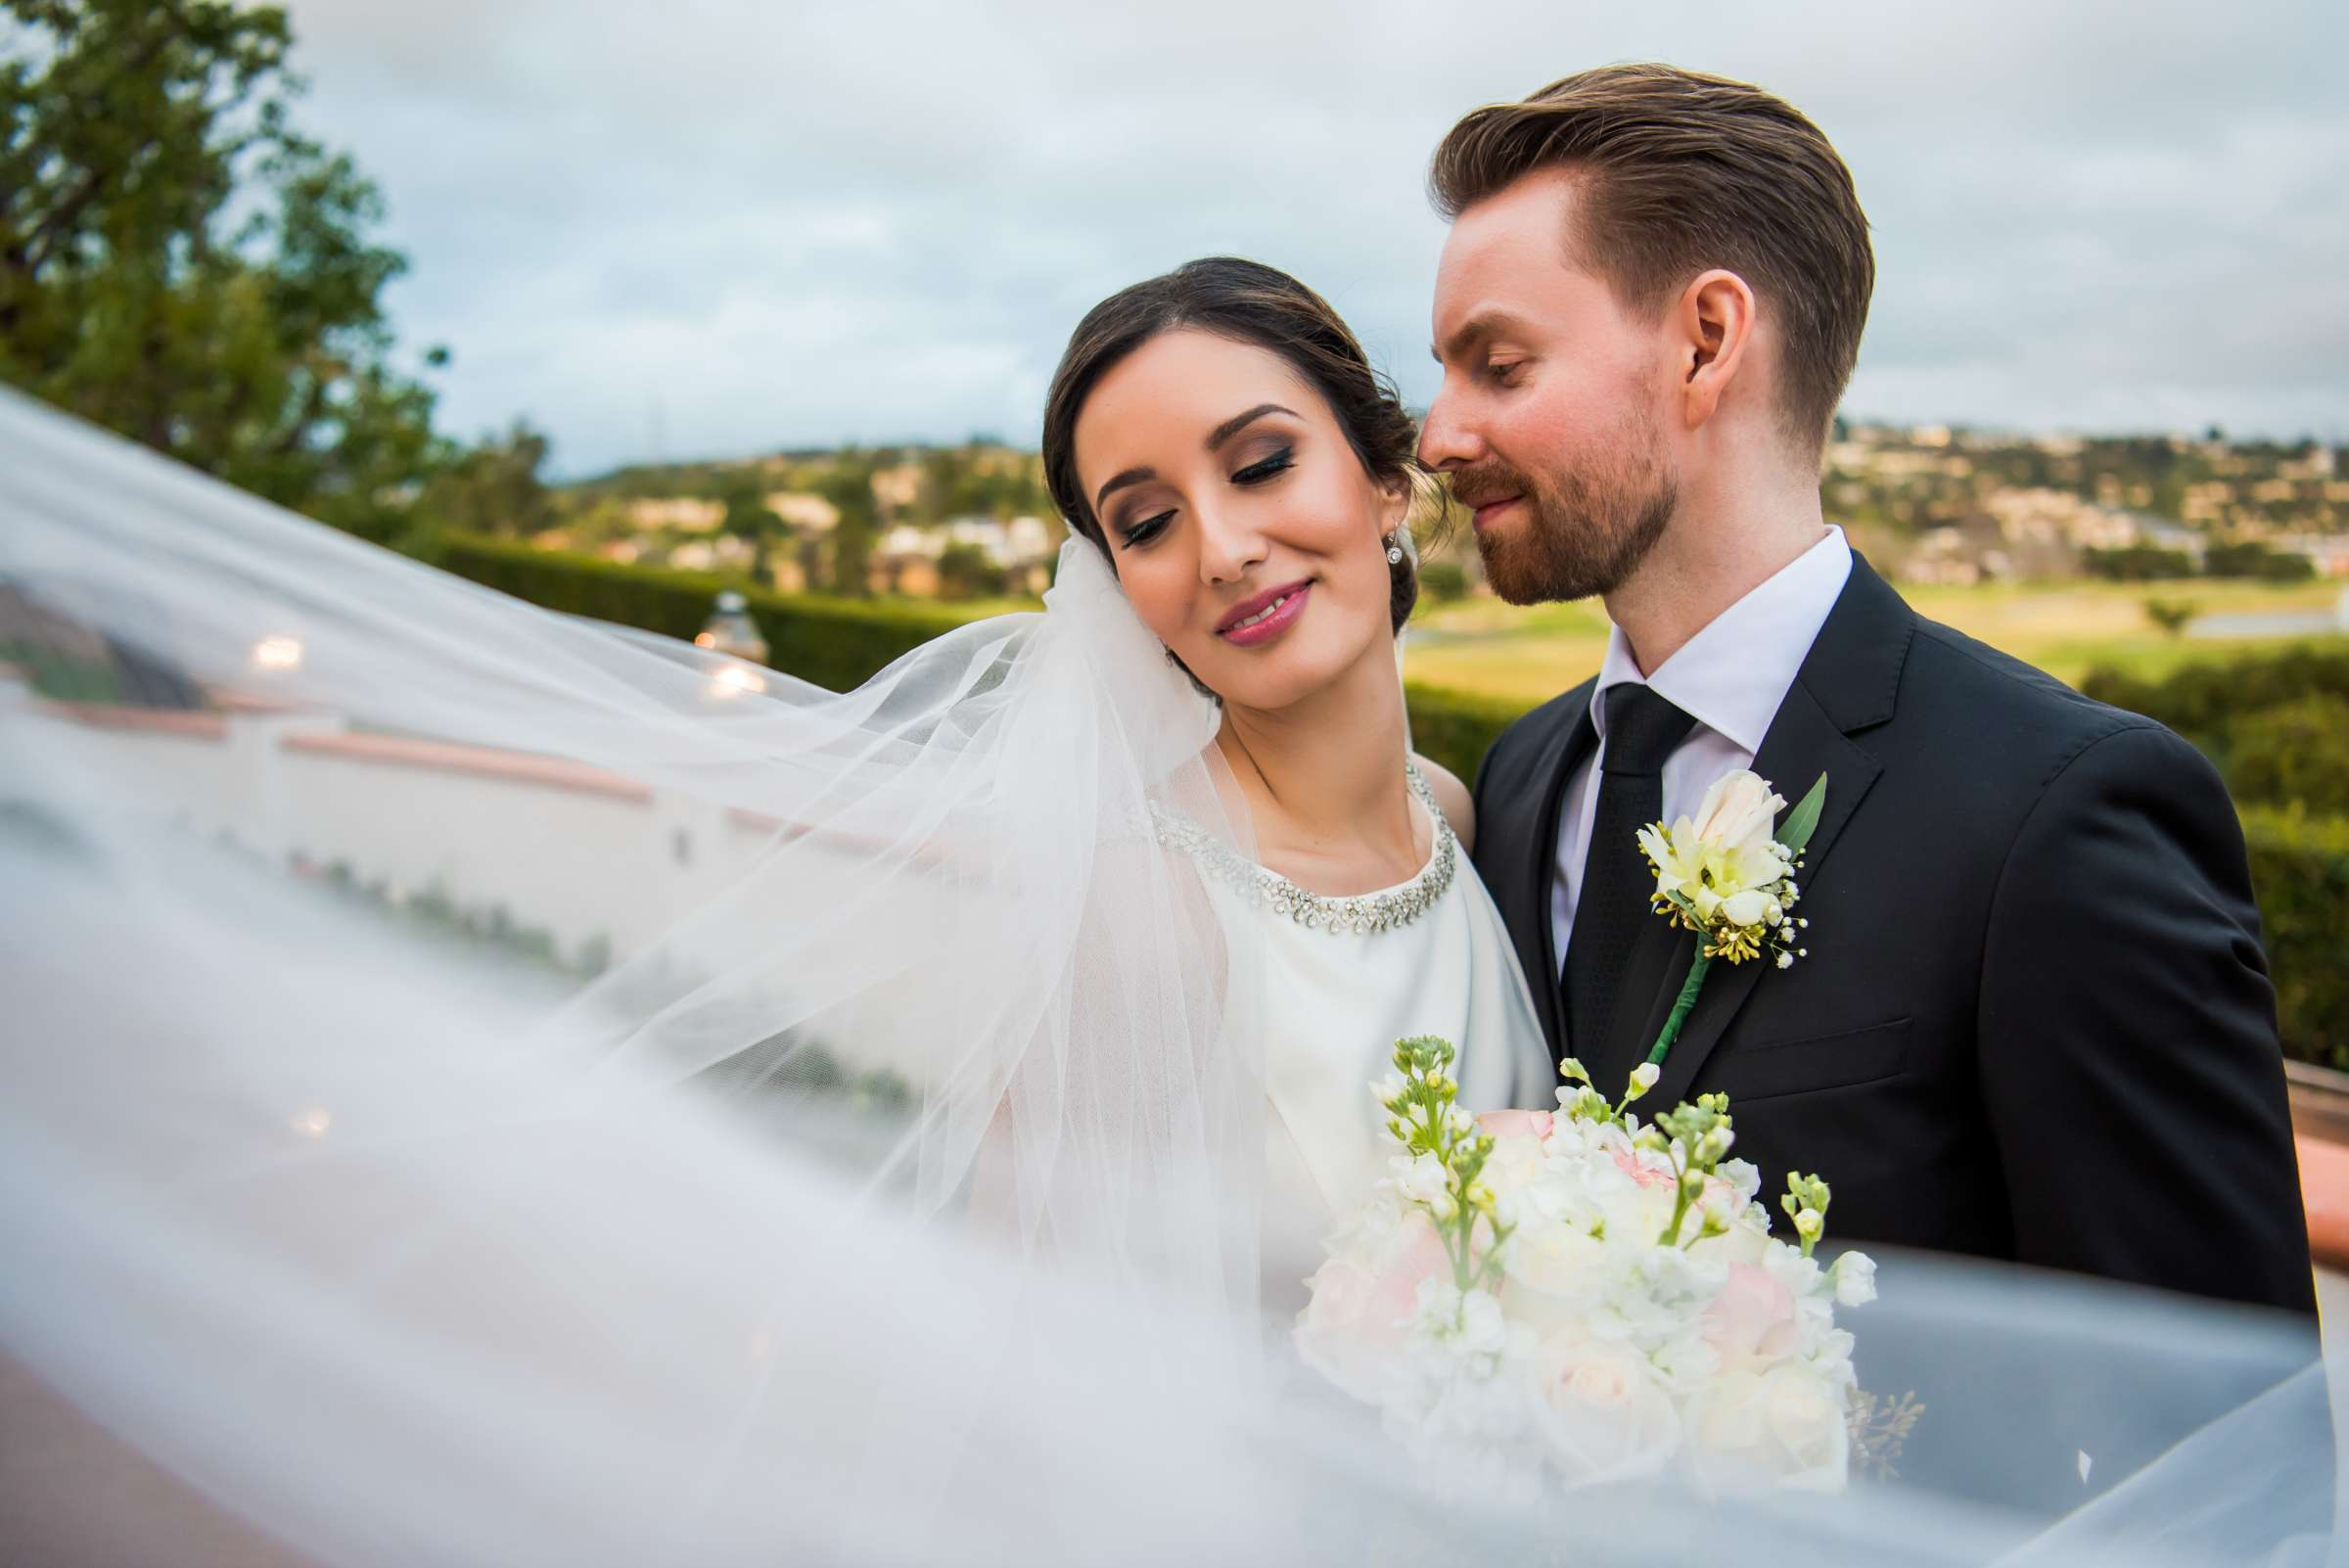 Omni La Costa Resort & Spa Wedding coordinated by Sweet Blossom Weddings, Sarah and Daniel Wedding Photo #2 by True Photography